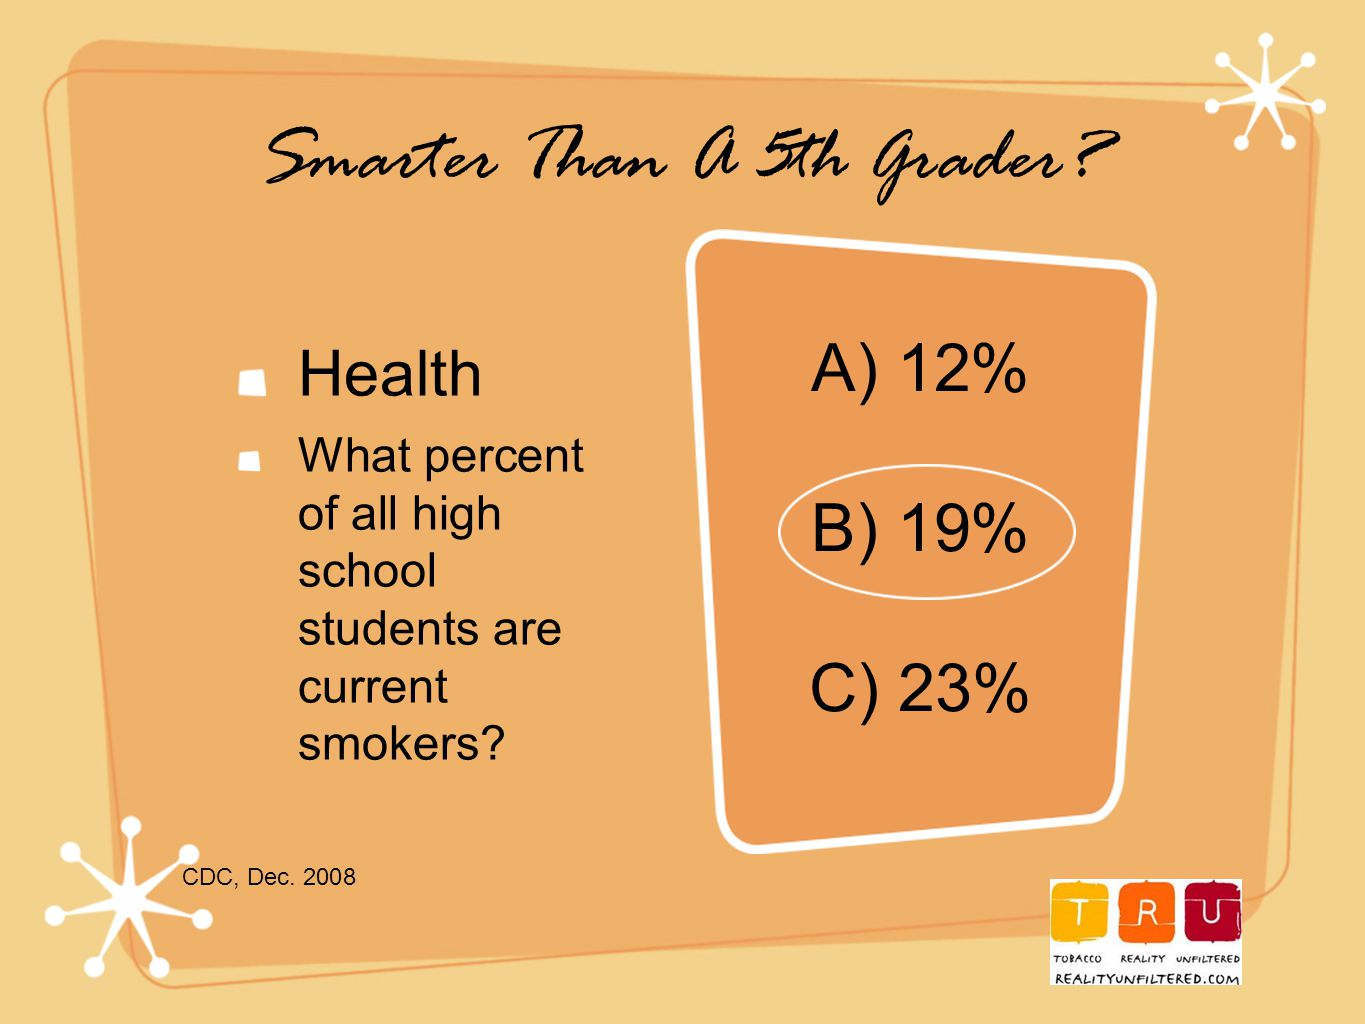 Smarter Than A 5th Grader. Health What percent of all high school students are current smokers.